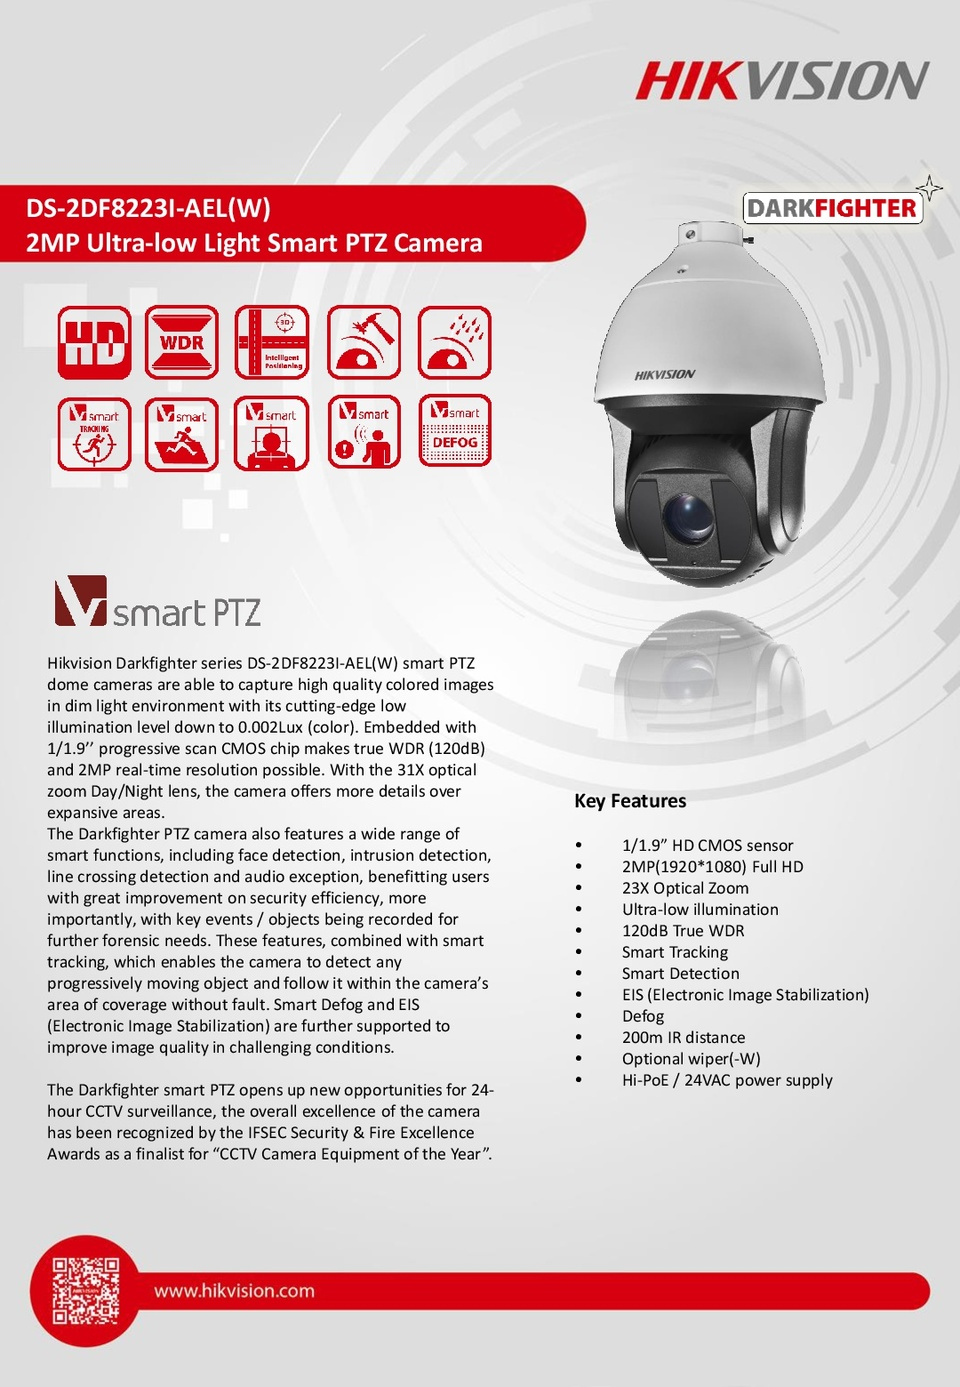 Hikvision DS-2DF8223I-AEL IP Outdoor Darkfighter PTZ Camera With 5.9-135.7mm Lens 0